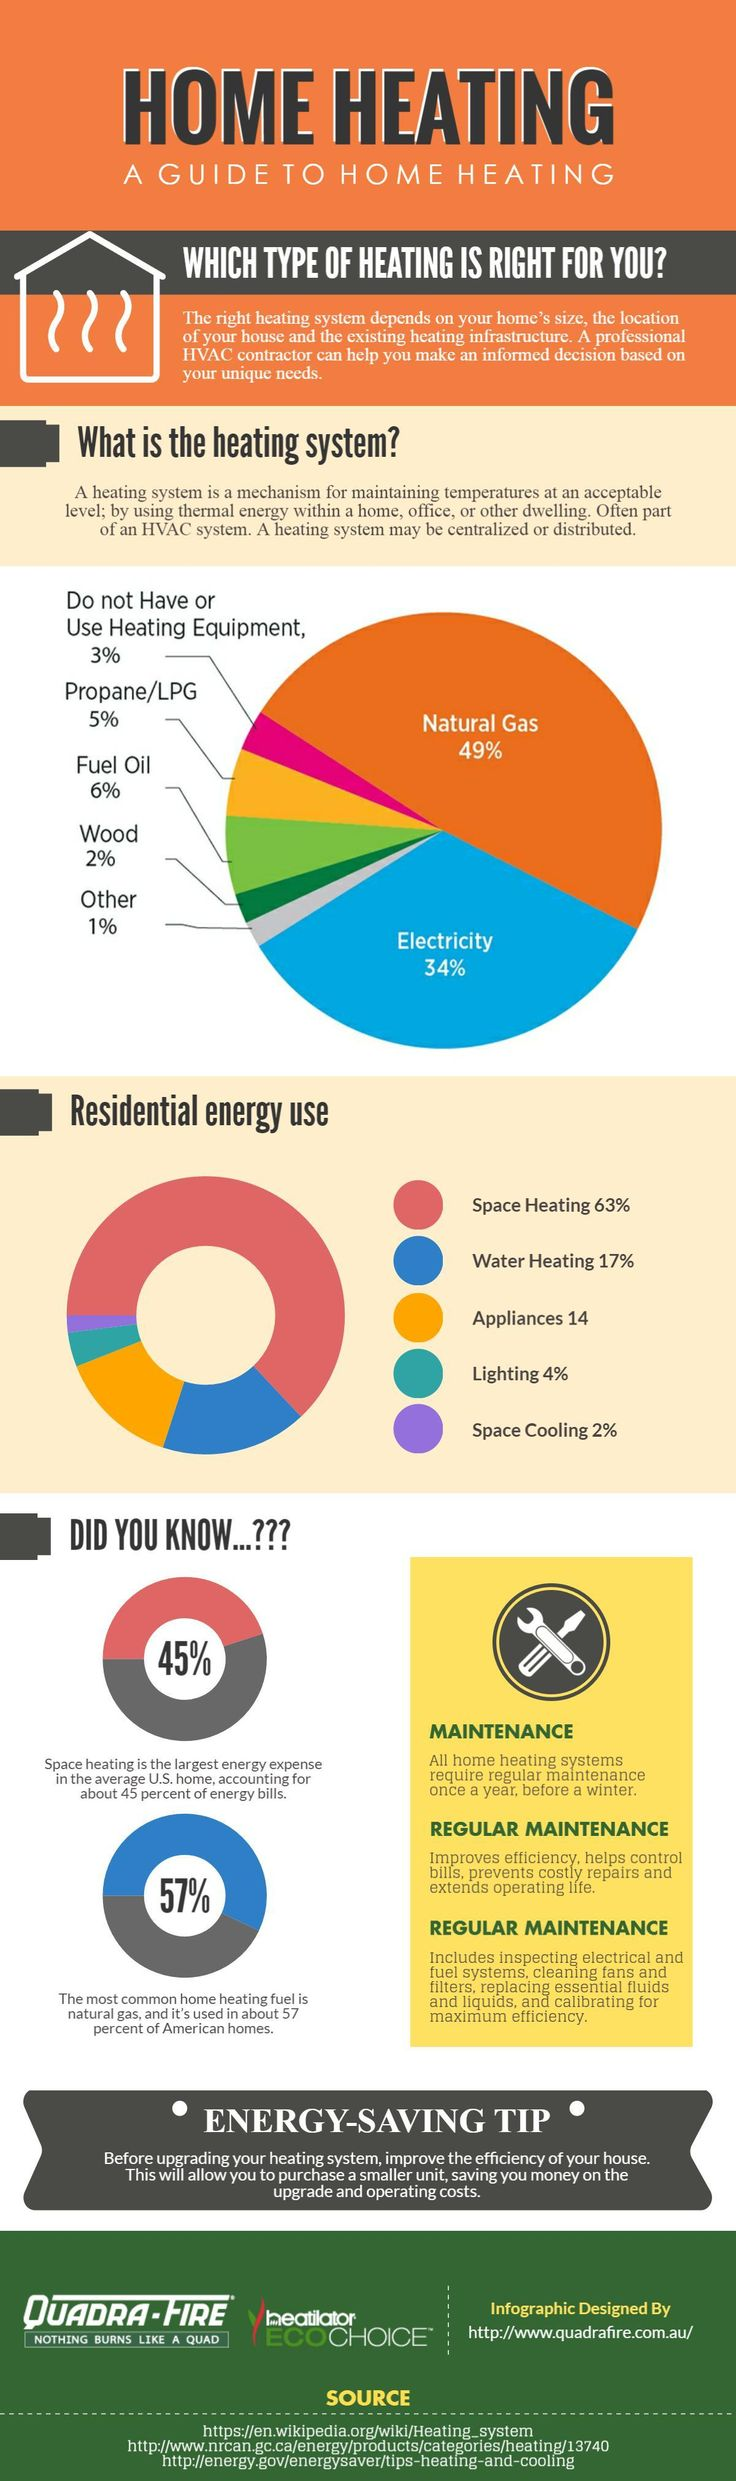 This infographic has everything you need to know about home heating systems -- including how heating systems work; a guide to home heating; residential energy use and energy saving tips. Do you know where your home is losing heat? Take a look at this helpful home heat loss infographic to learn more and make your home more energy efficient.